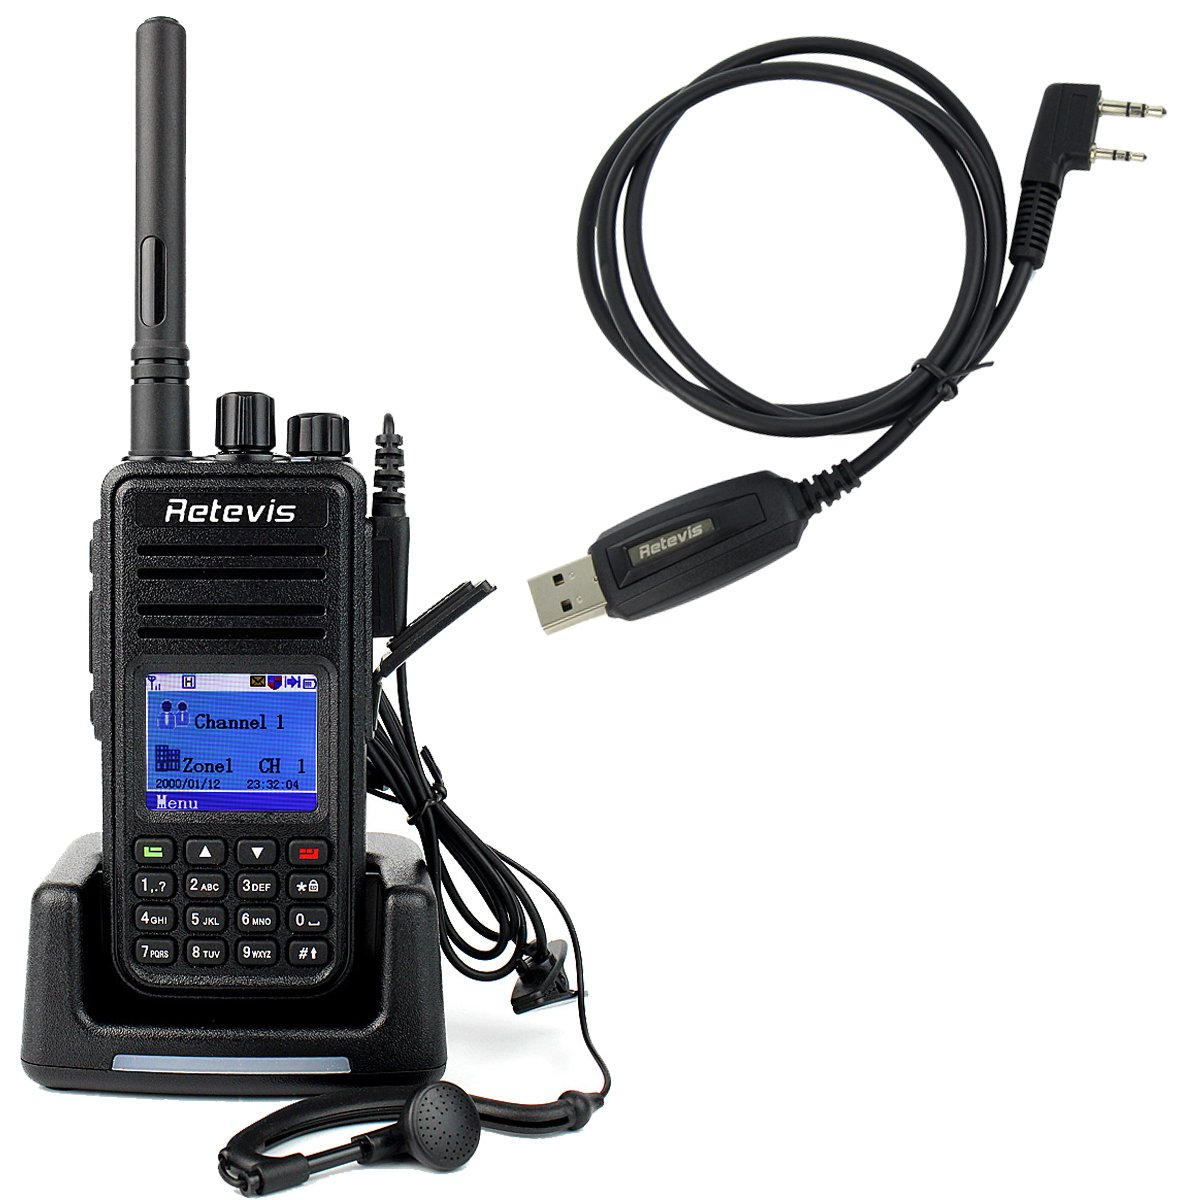 Retevis RT3 Two Way Radio DMR Digital/Analog UHF 400-480MHz 1000CH 2000mAh VOX Walkie Talkies with Earpiece and Programming Cable by Retevis